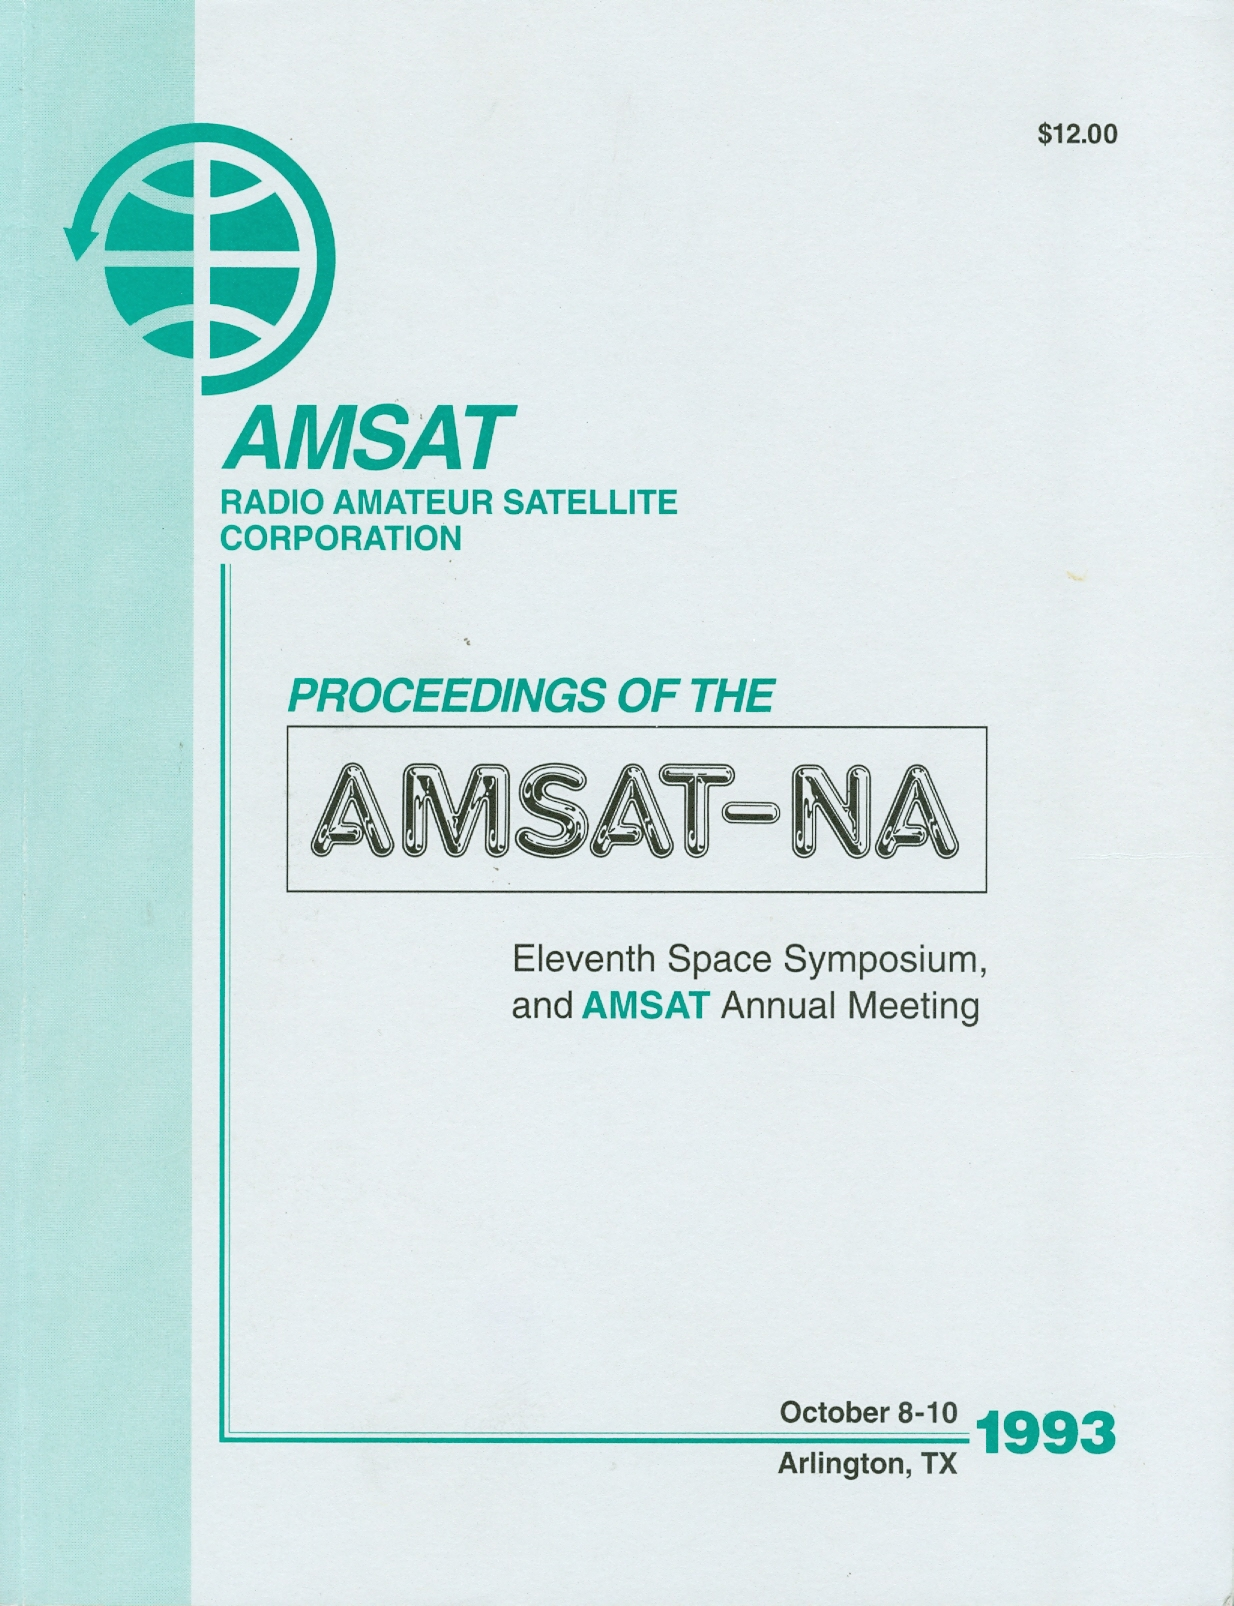 Proceedings of the AMSAT-NA Eleventh Space Symposium, and AMSAT Annual Meeting